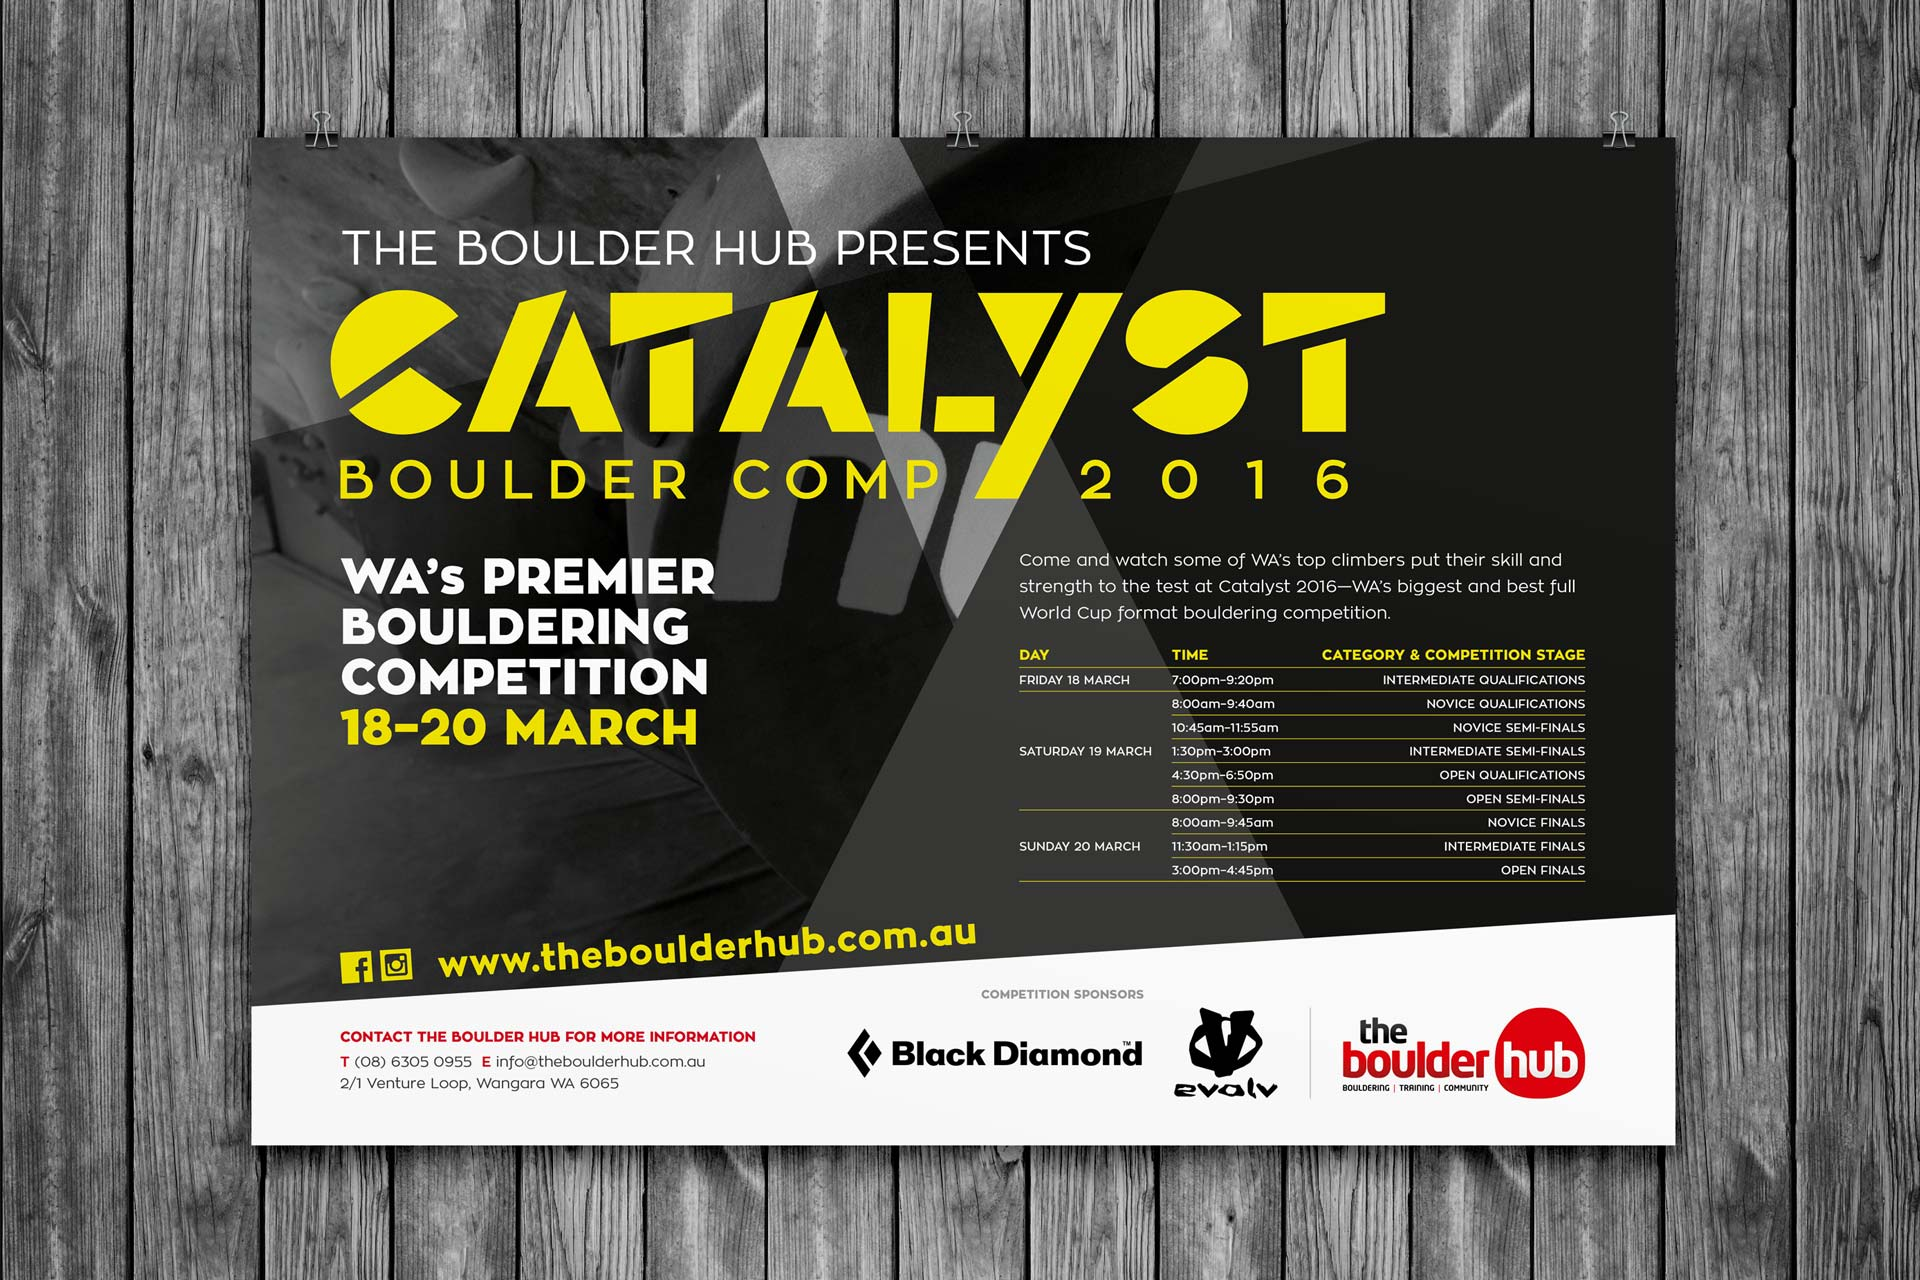 poster-catalyst-bouldering-climbing-competition-hub